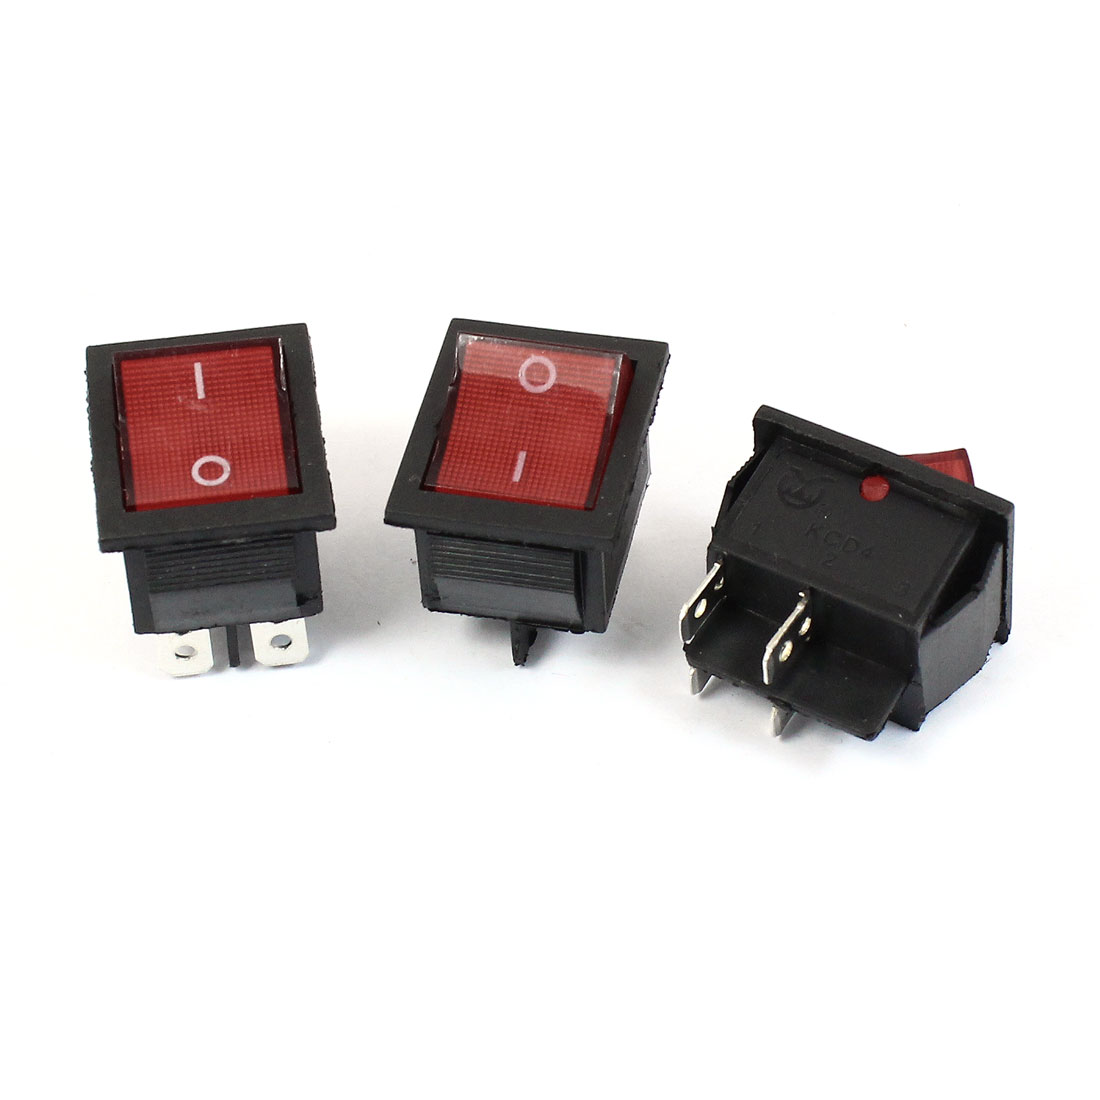 AC 220V 15A 4Pin DPST ON/OFF Red Indicator Lamp Rocker Switch 3 Pcs